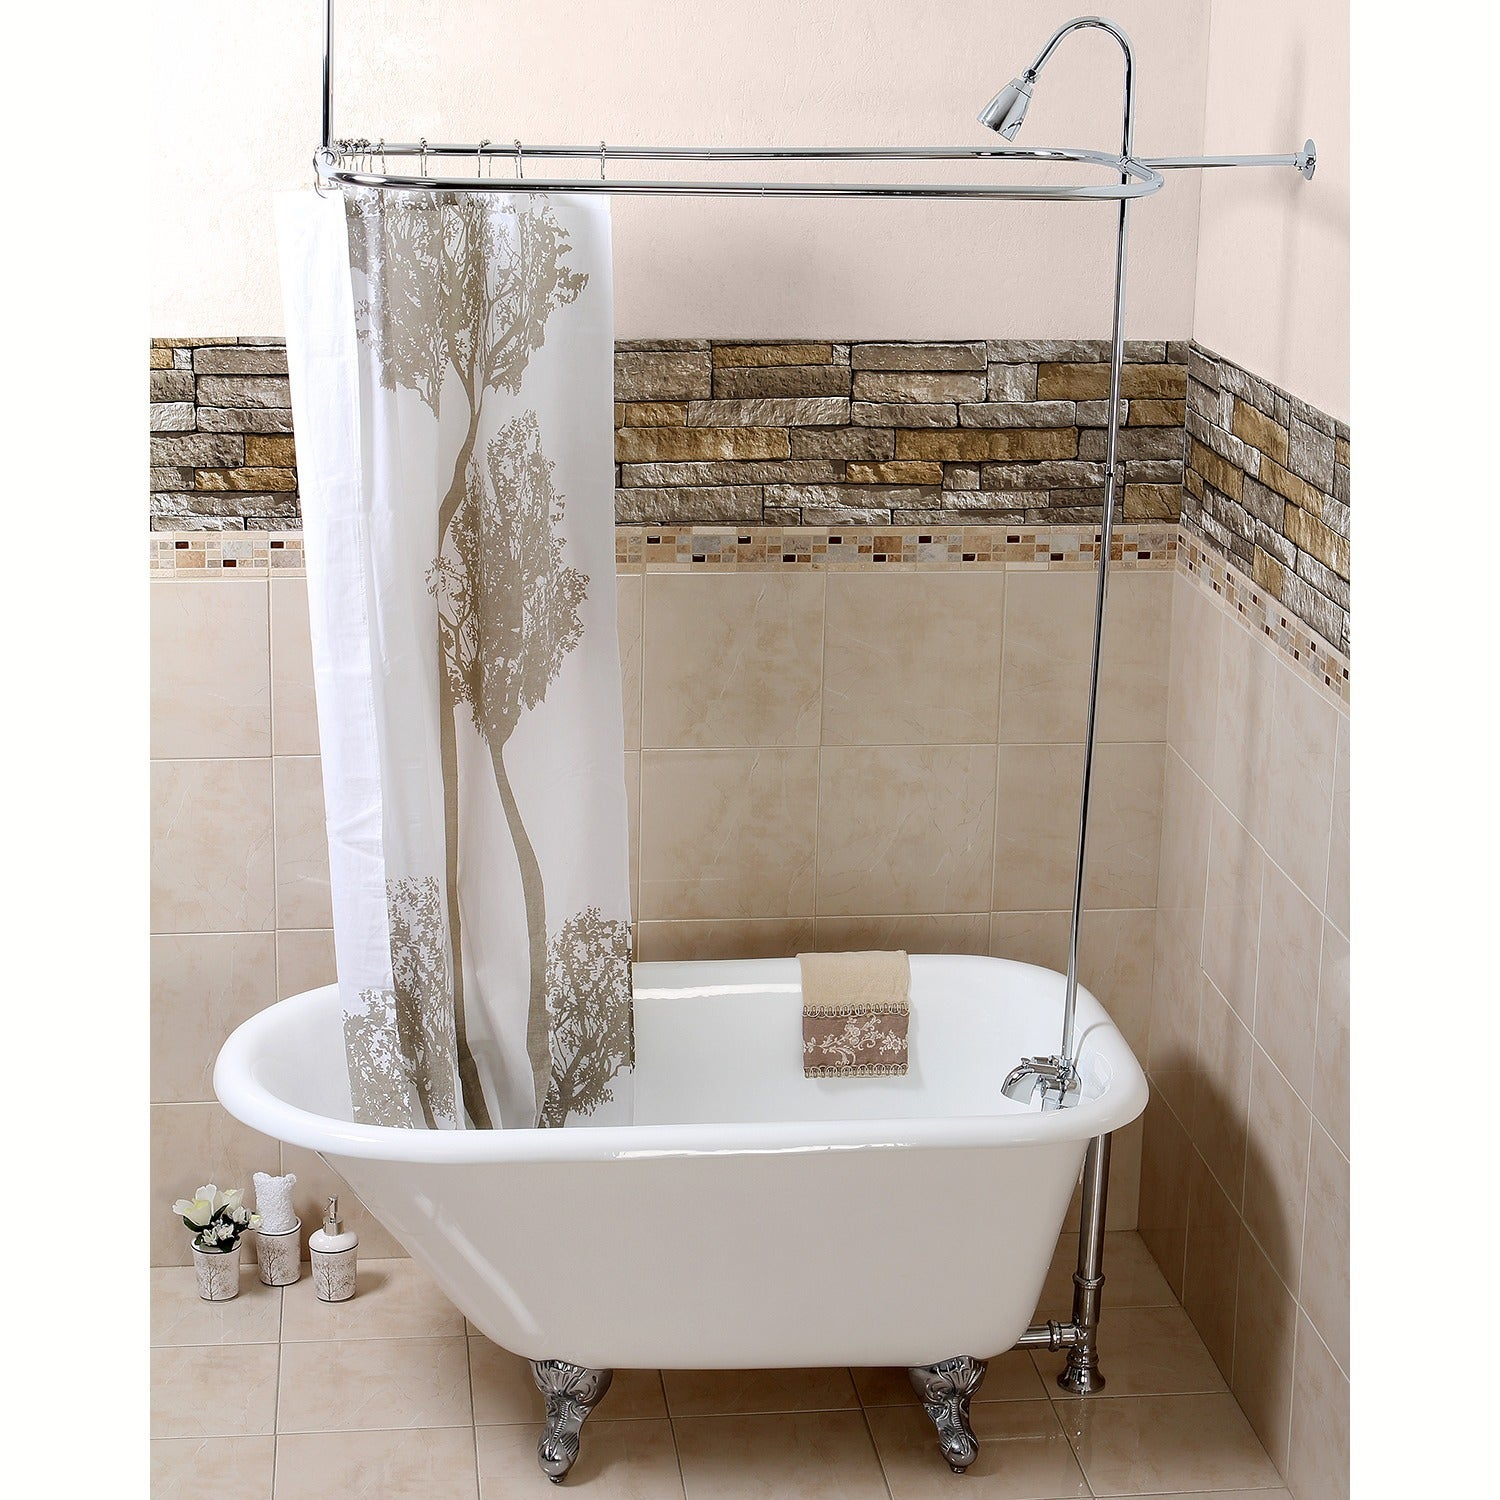 bathtub combo shower pictures conversion in inspiration tub ideas beautiful walk to with and convert